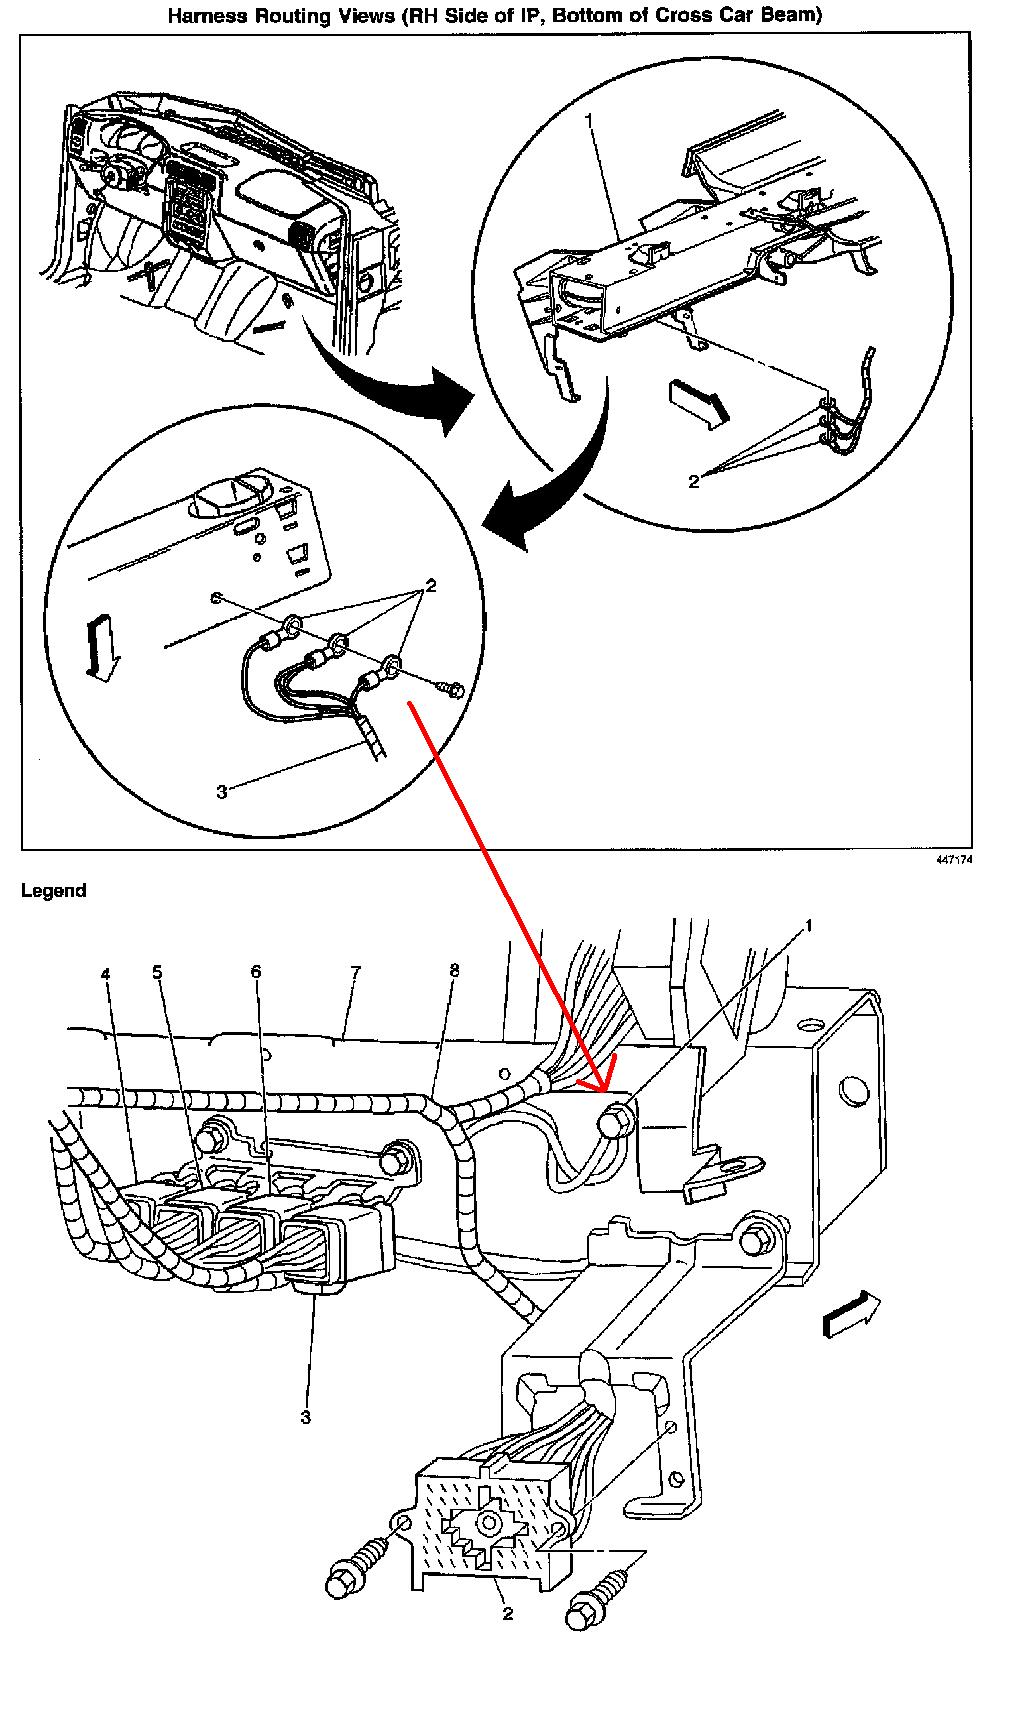 2004 pontiac montana fuse box diagram pictures to pin on